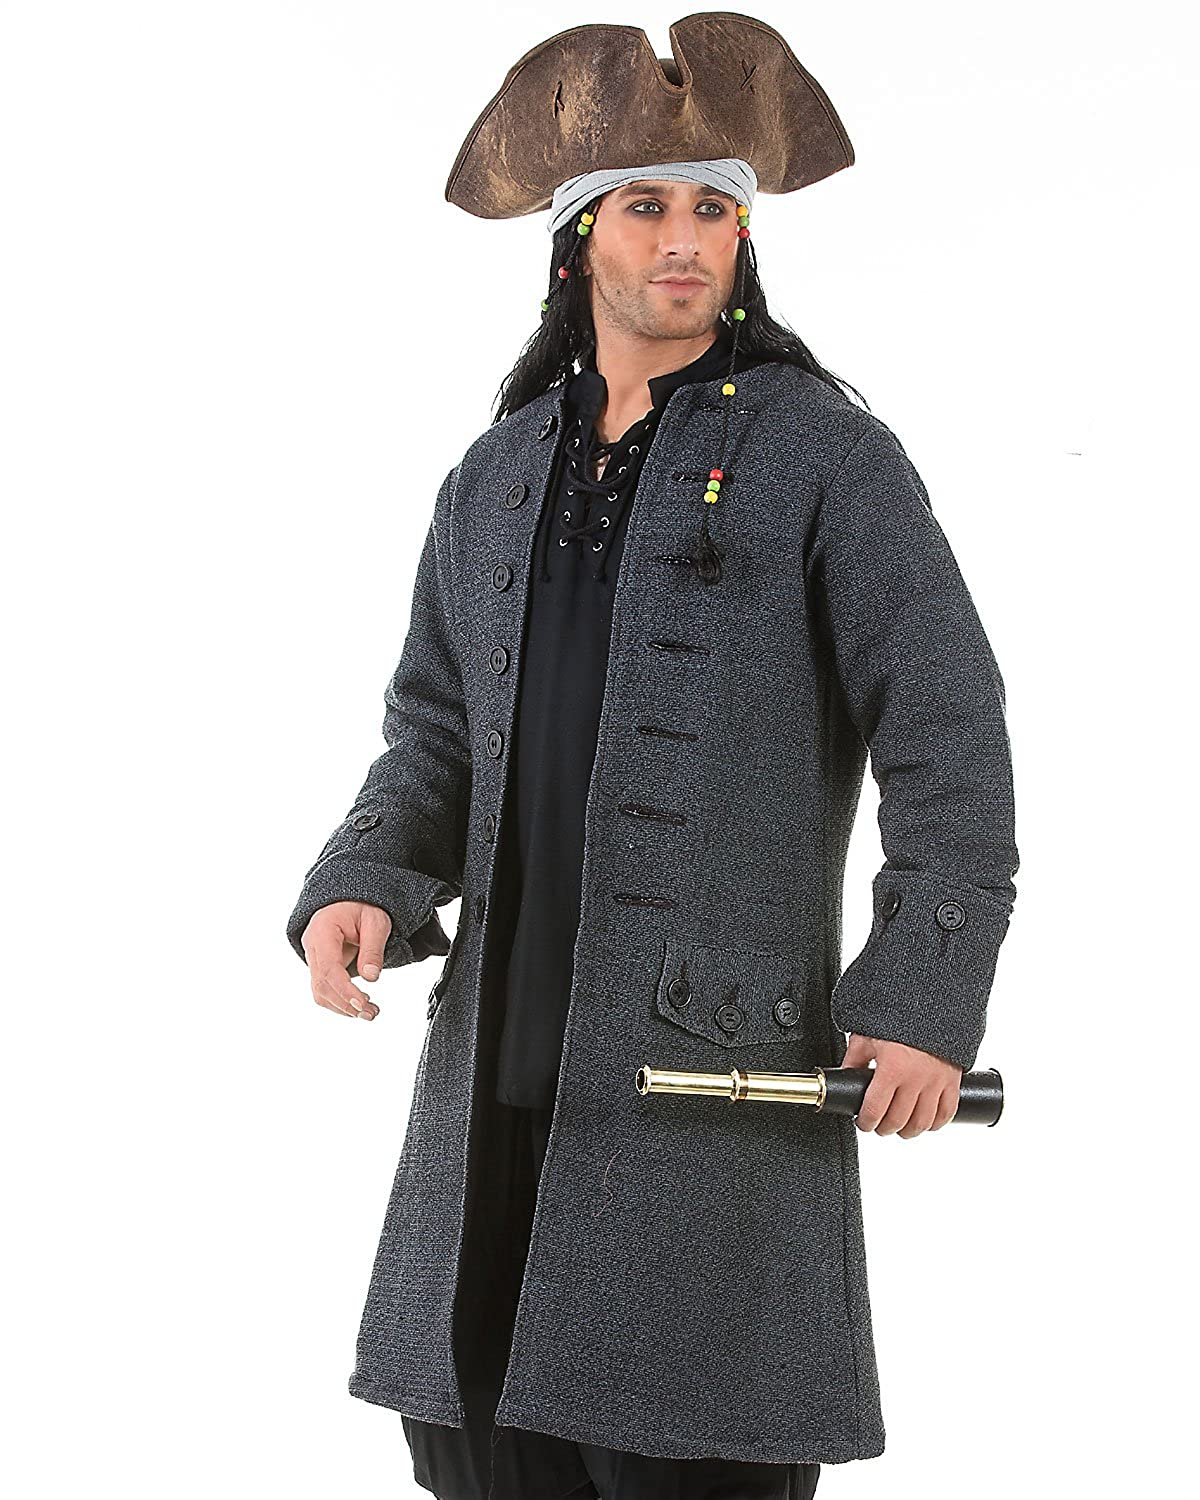 Jack Sparrow Pirate Costume Coat